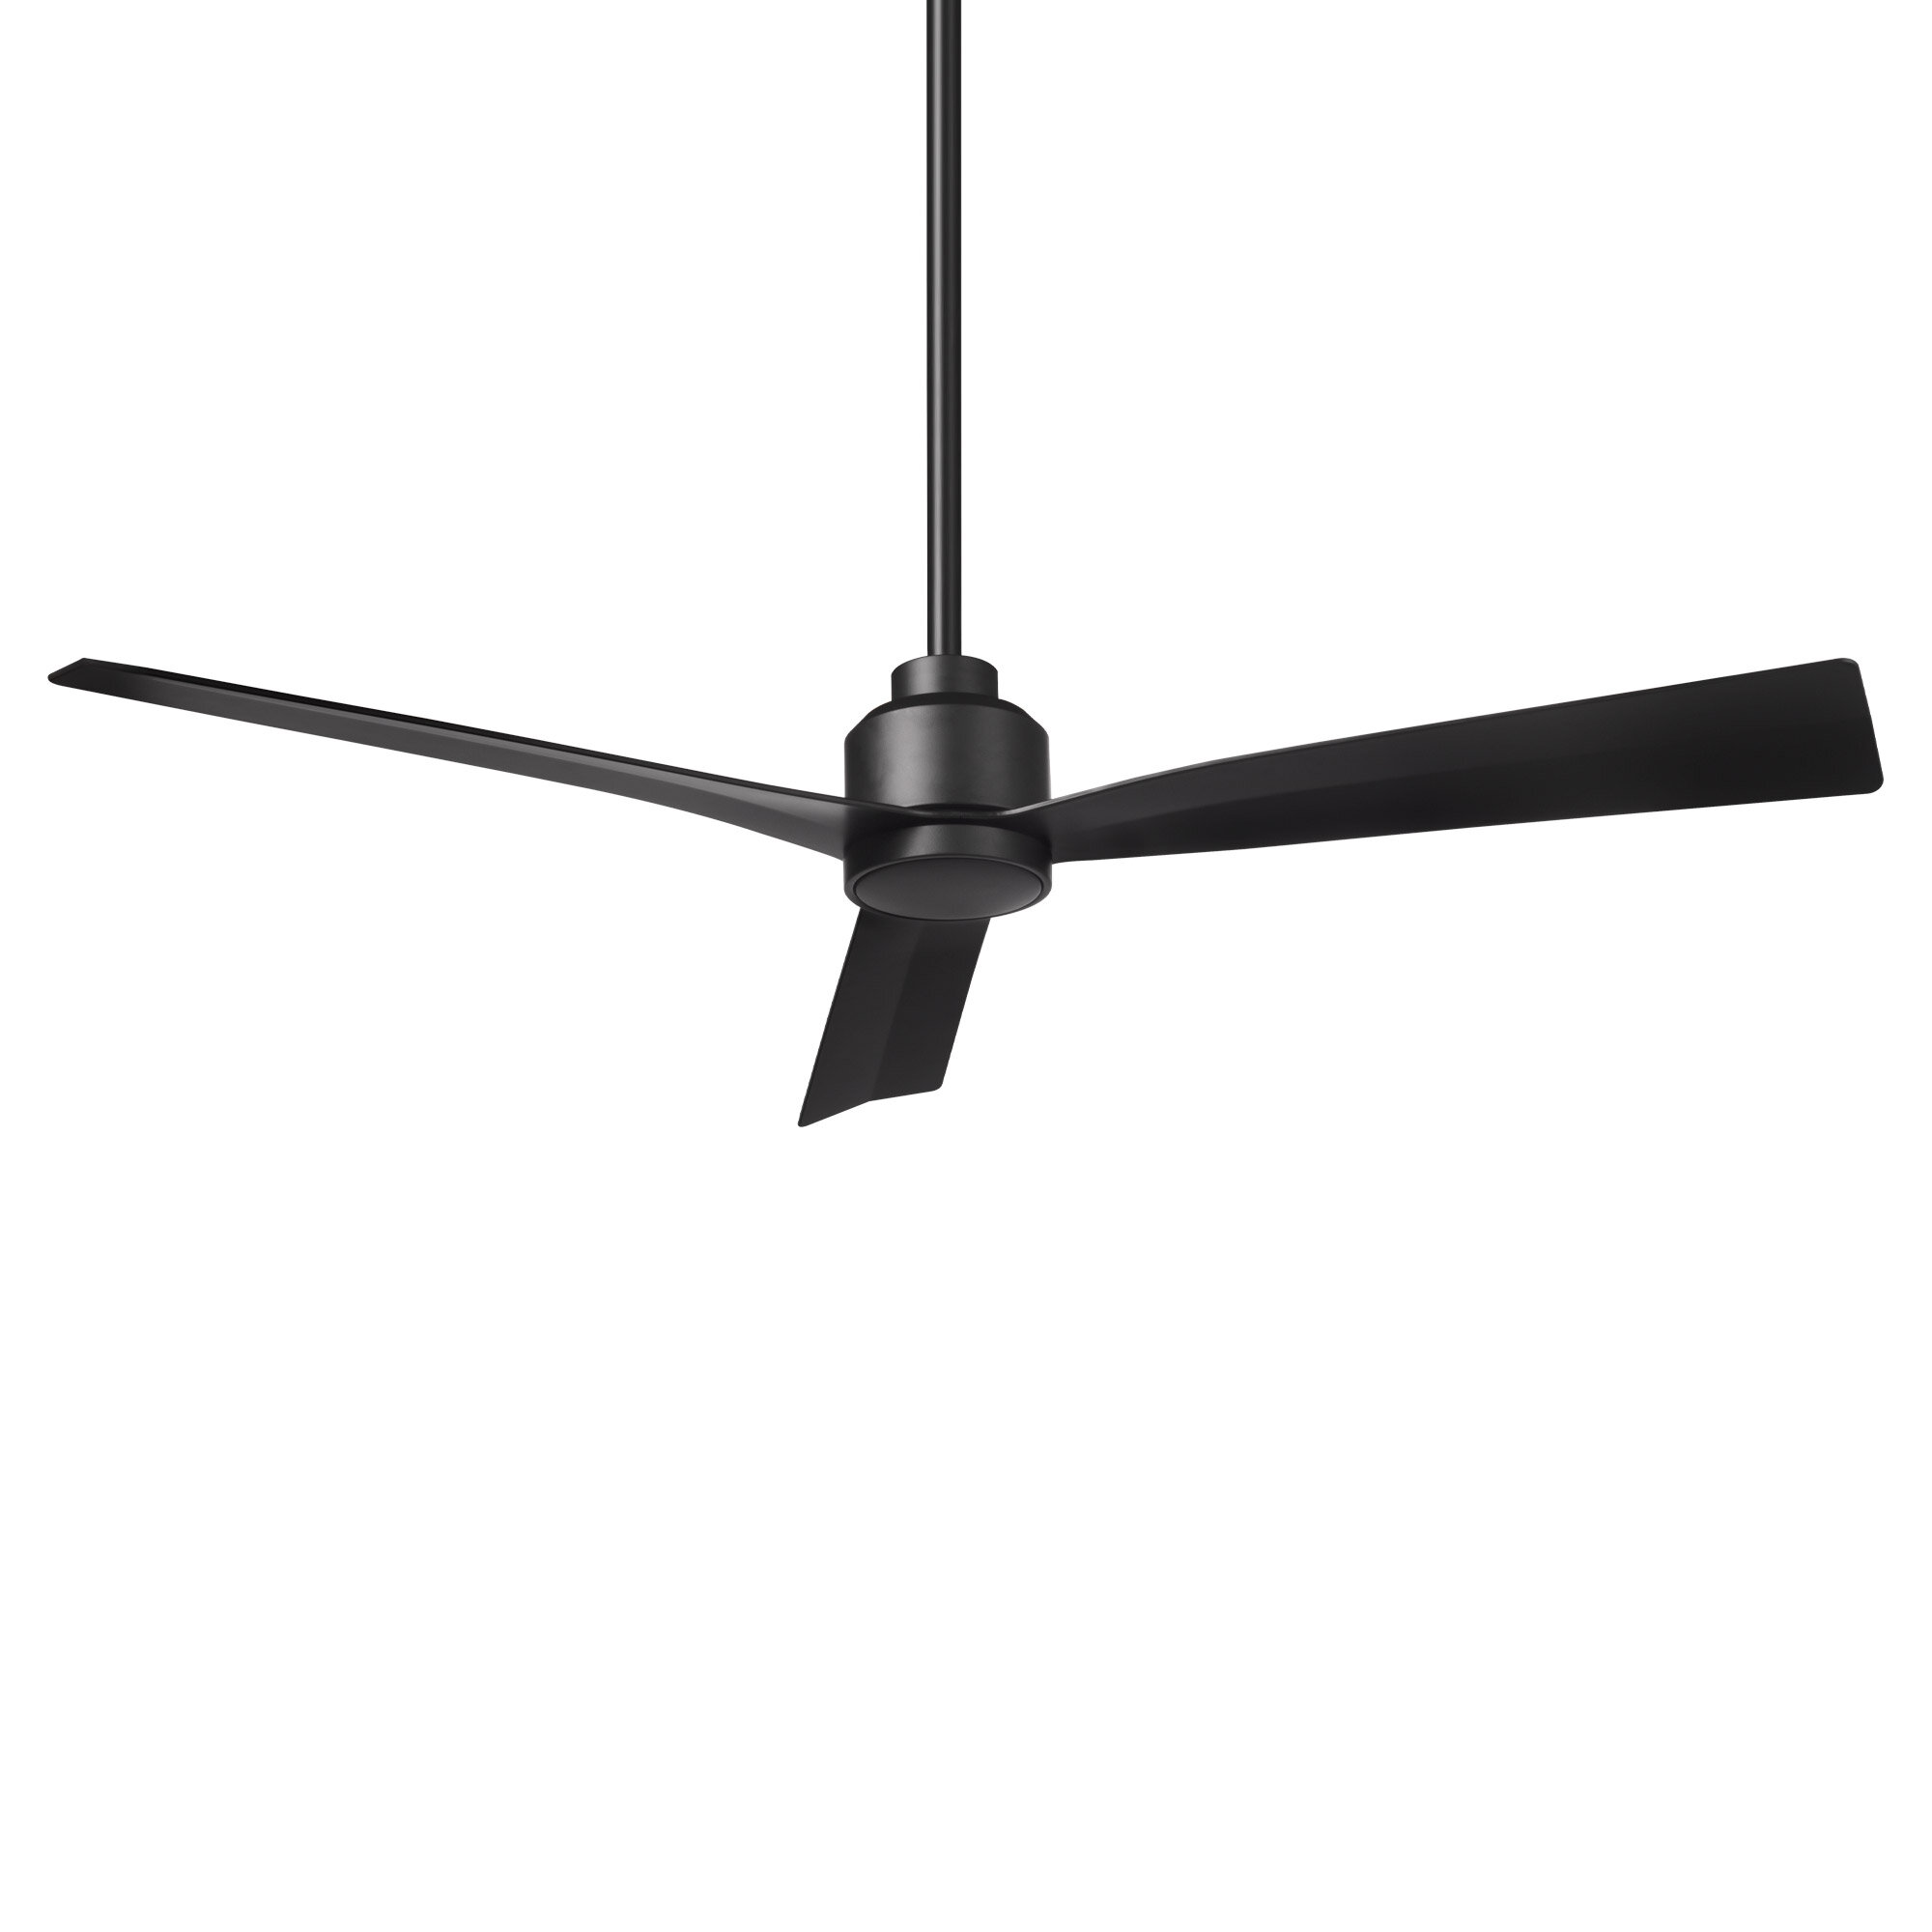 Wac Lighting 52 3 Blade Outdoor Smart Propeller Ceiling Fan With Remote Control And Light Kit Included Reviews Wayfair